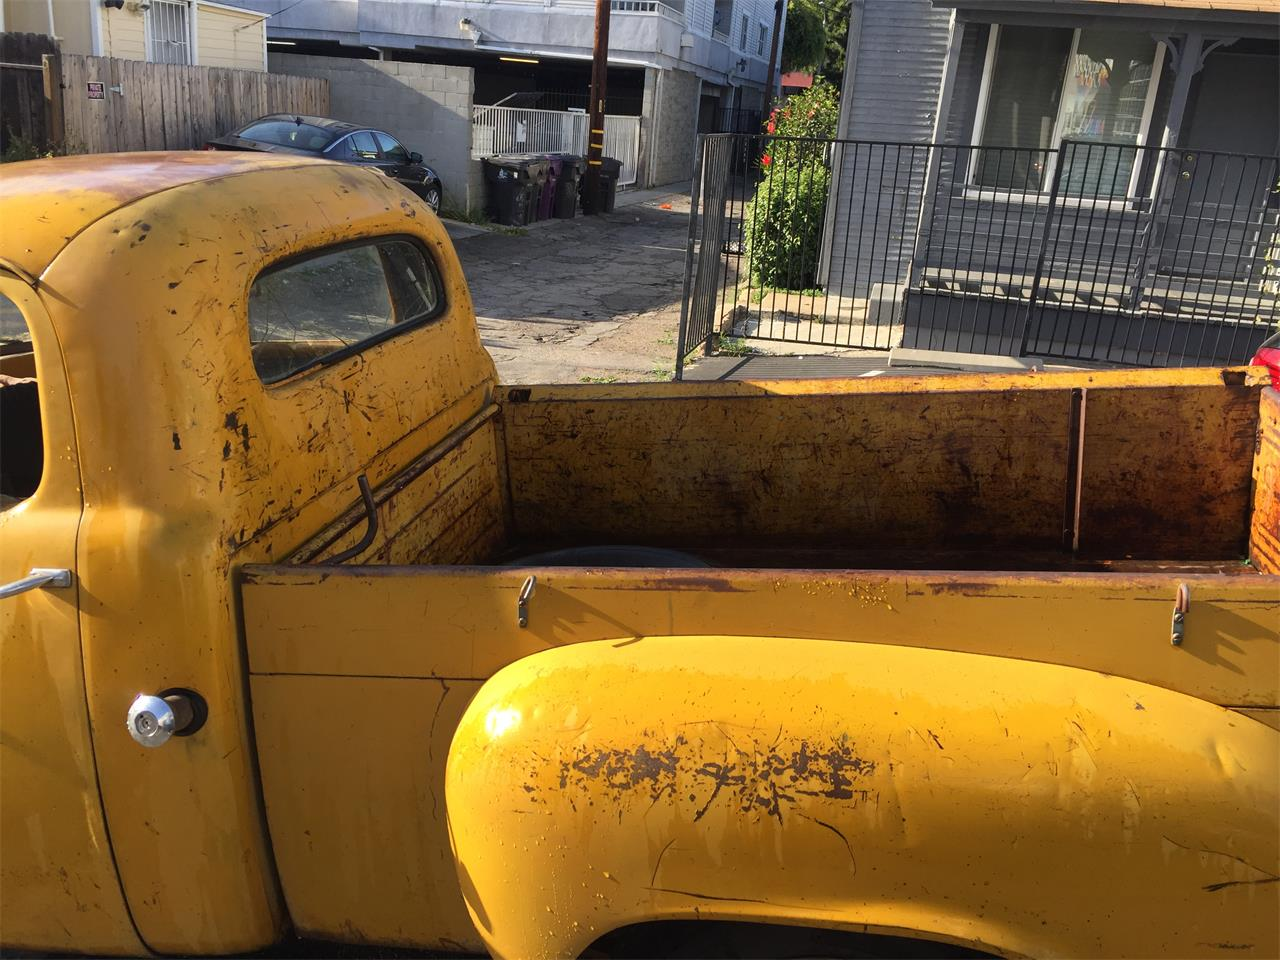 Large Picture of 1948 Truck located in California - $10,900.00 Offered by a Private Seller - GI3G